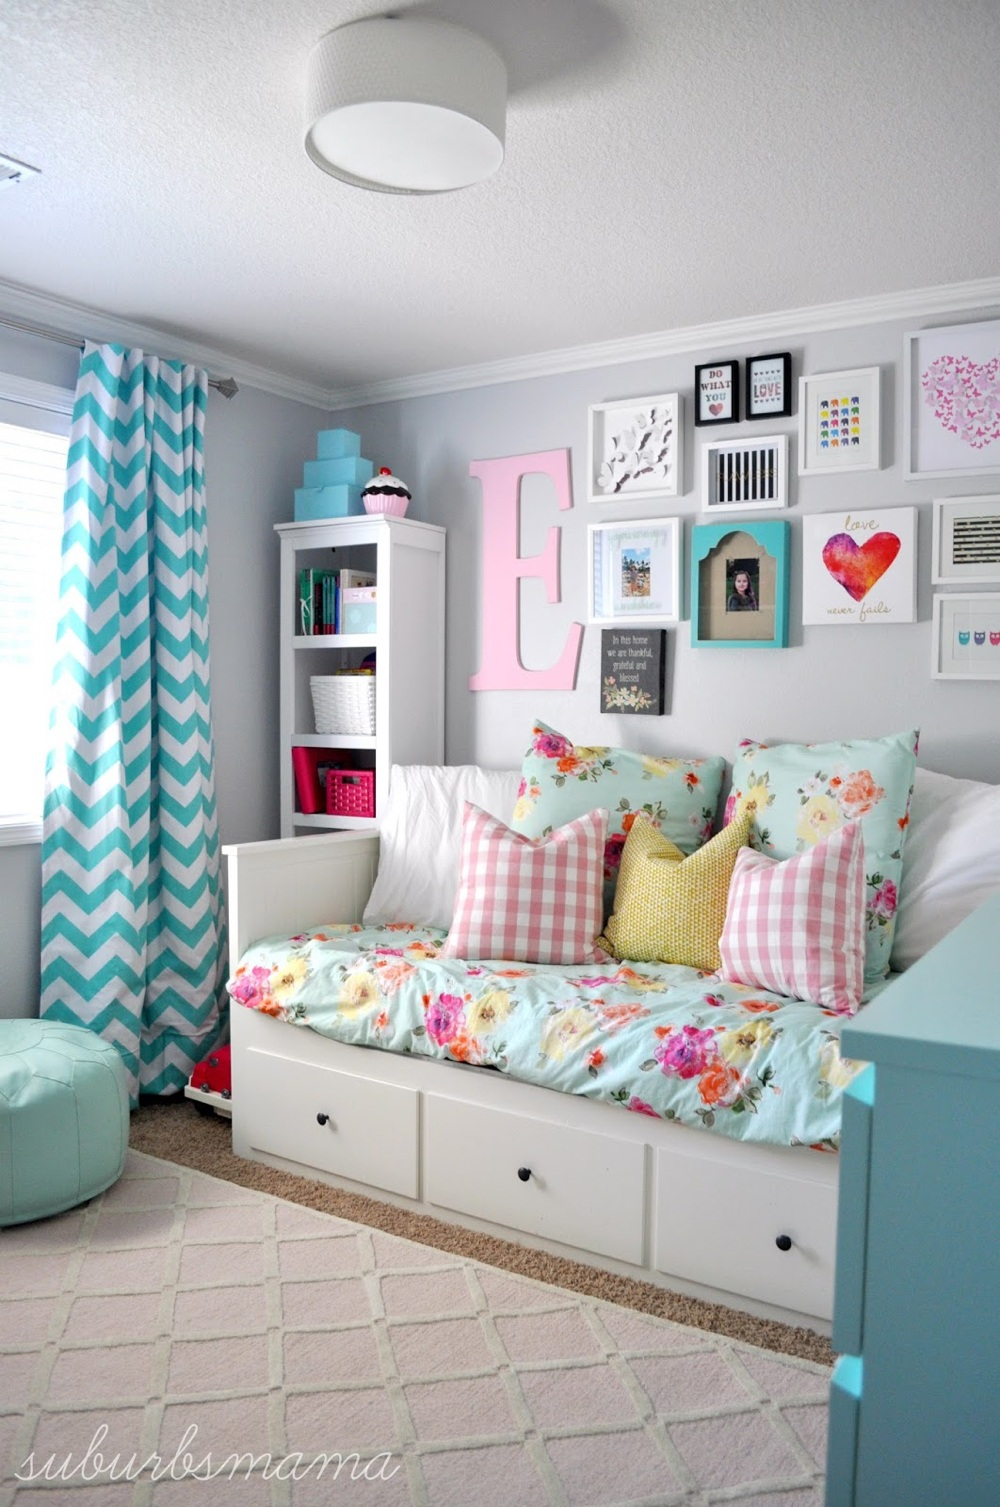 23 Stylish Teen Girl's Bedroom Ideas | Homelovr on Teenager Room Girl  id=35536